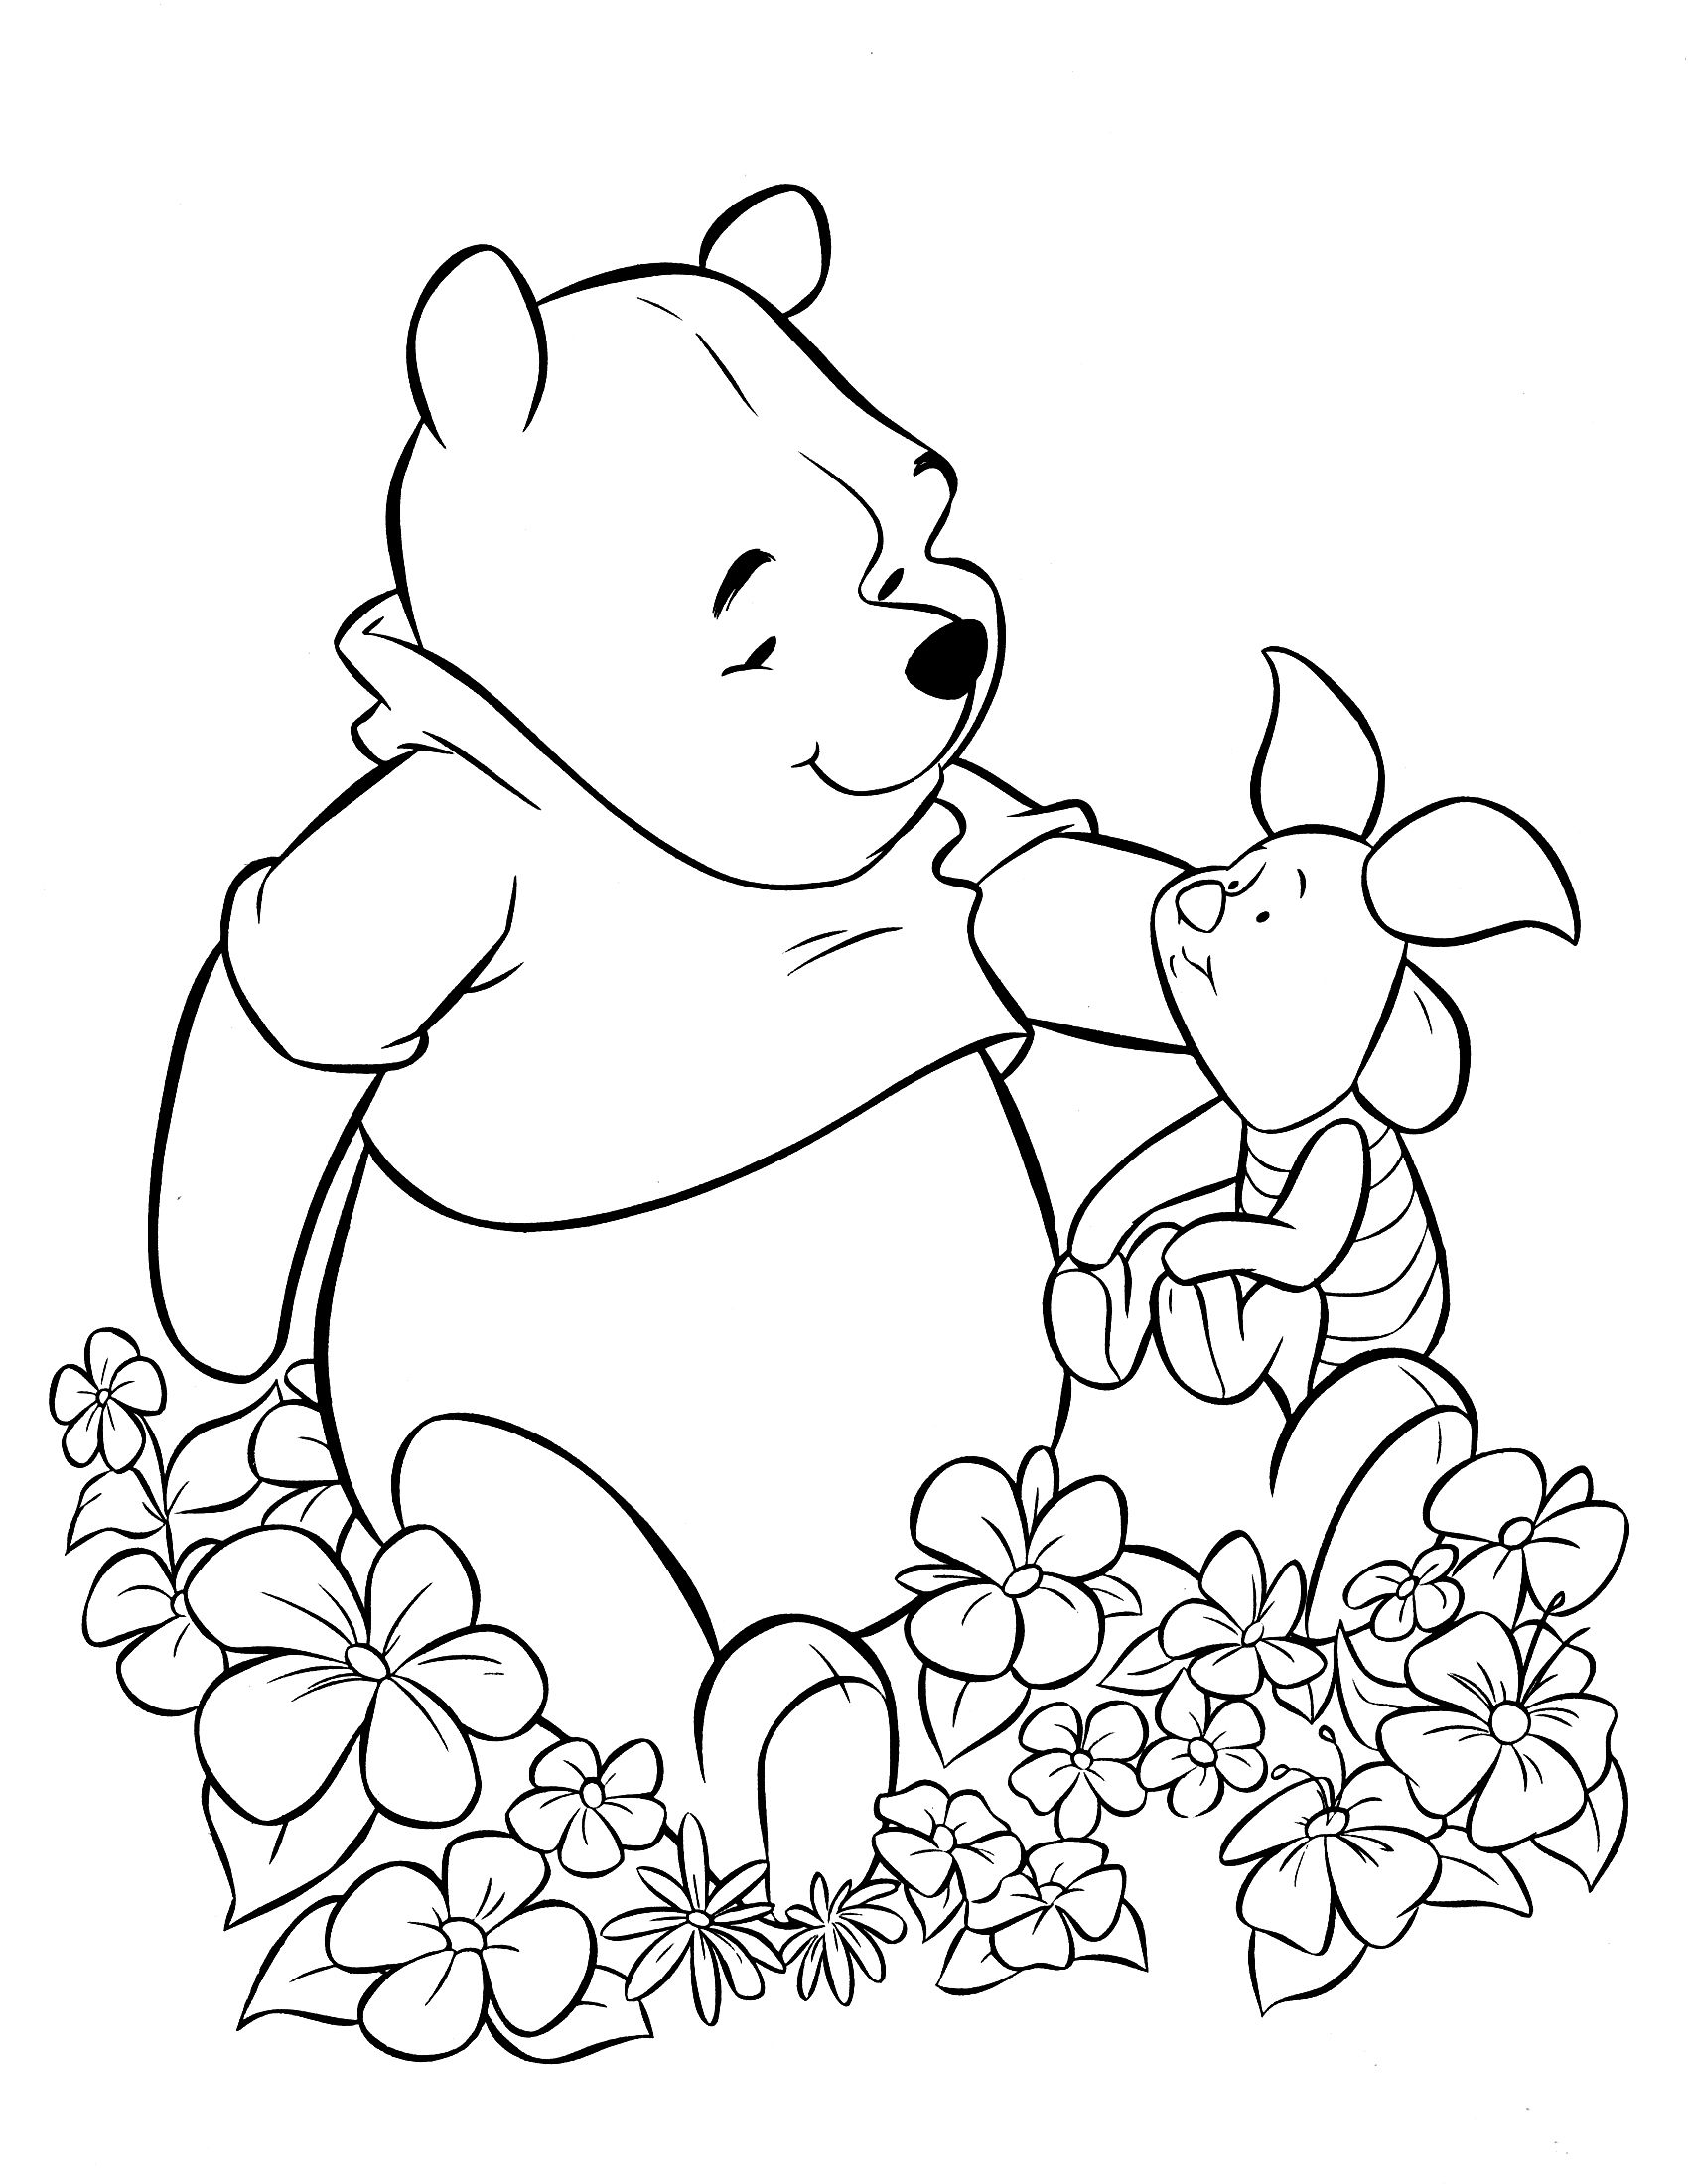 Pooh 15 Disney Coloring Pages Coloring Pages Coloring Books